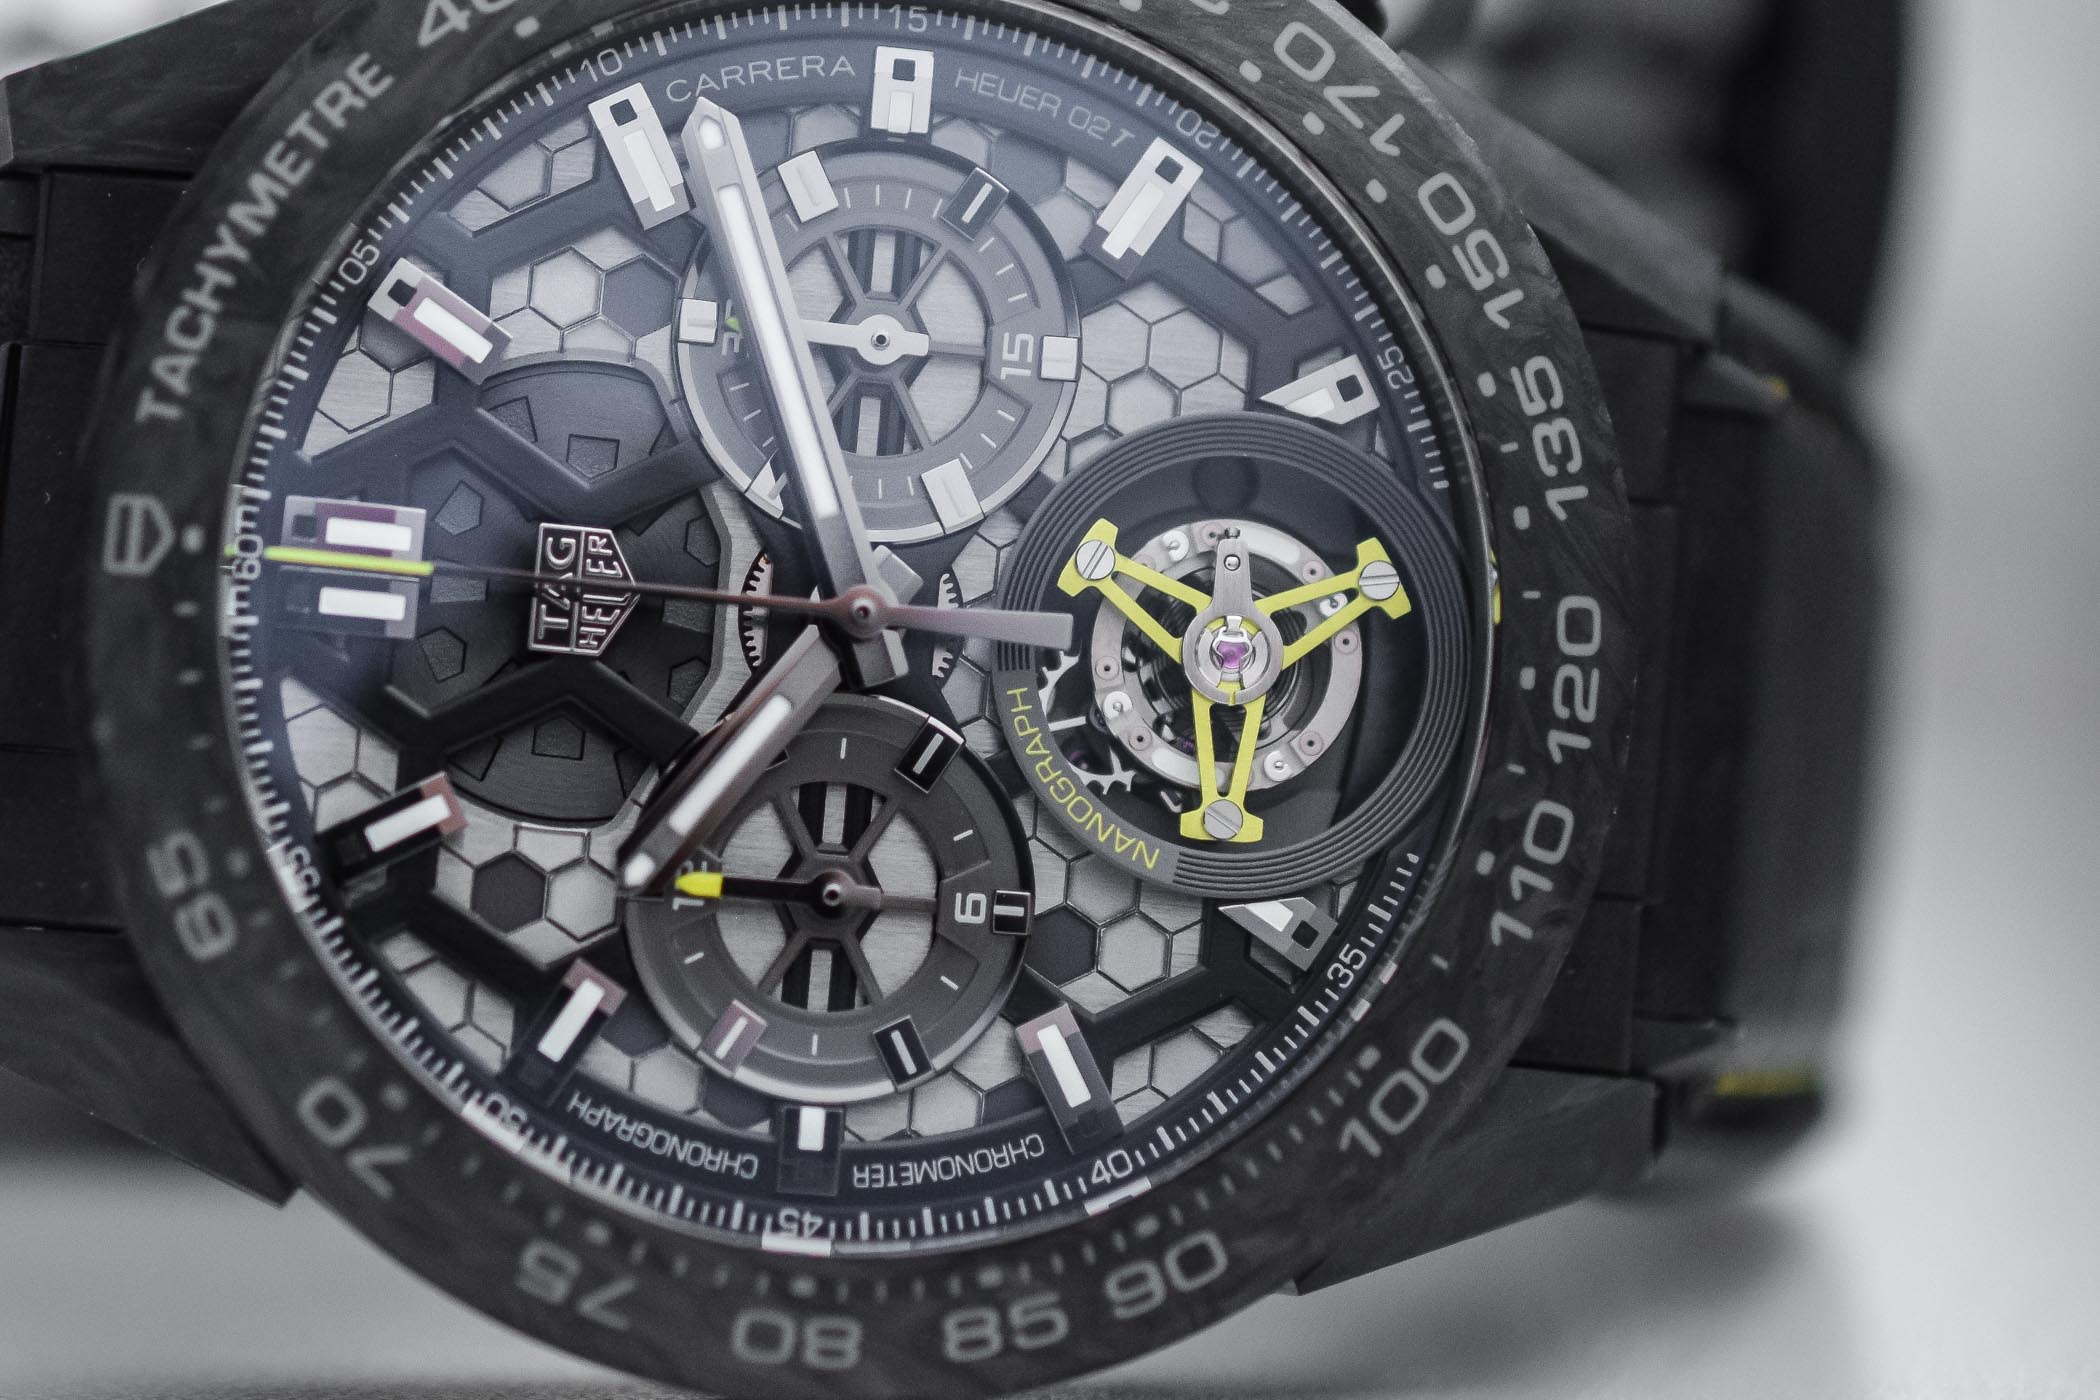 TAG Heuer's solution is based on a complex